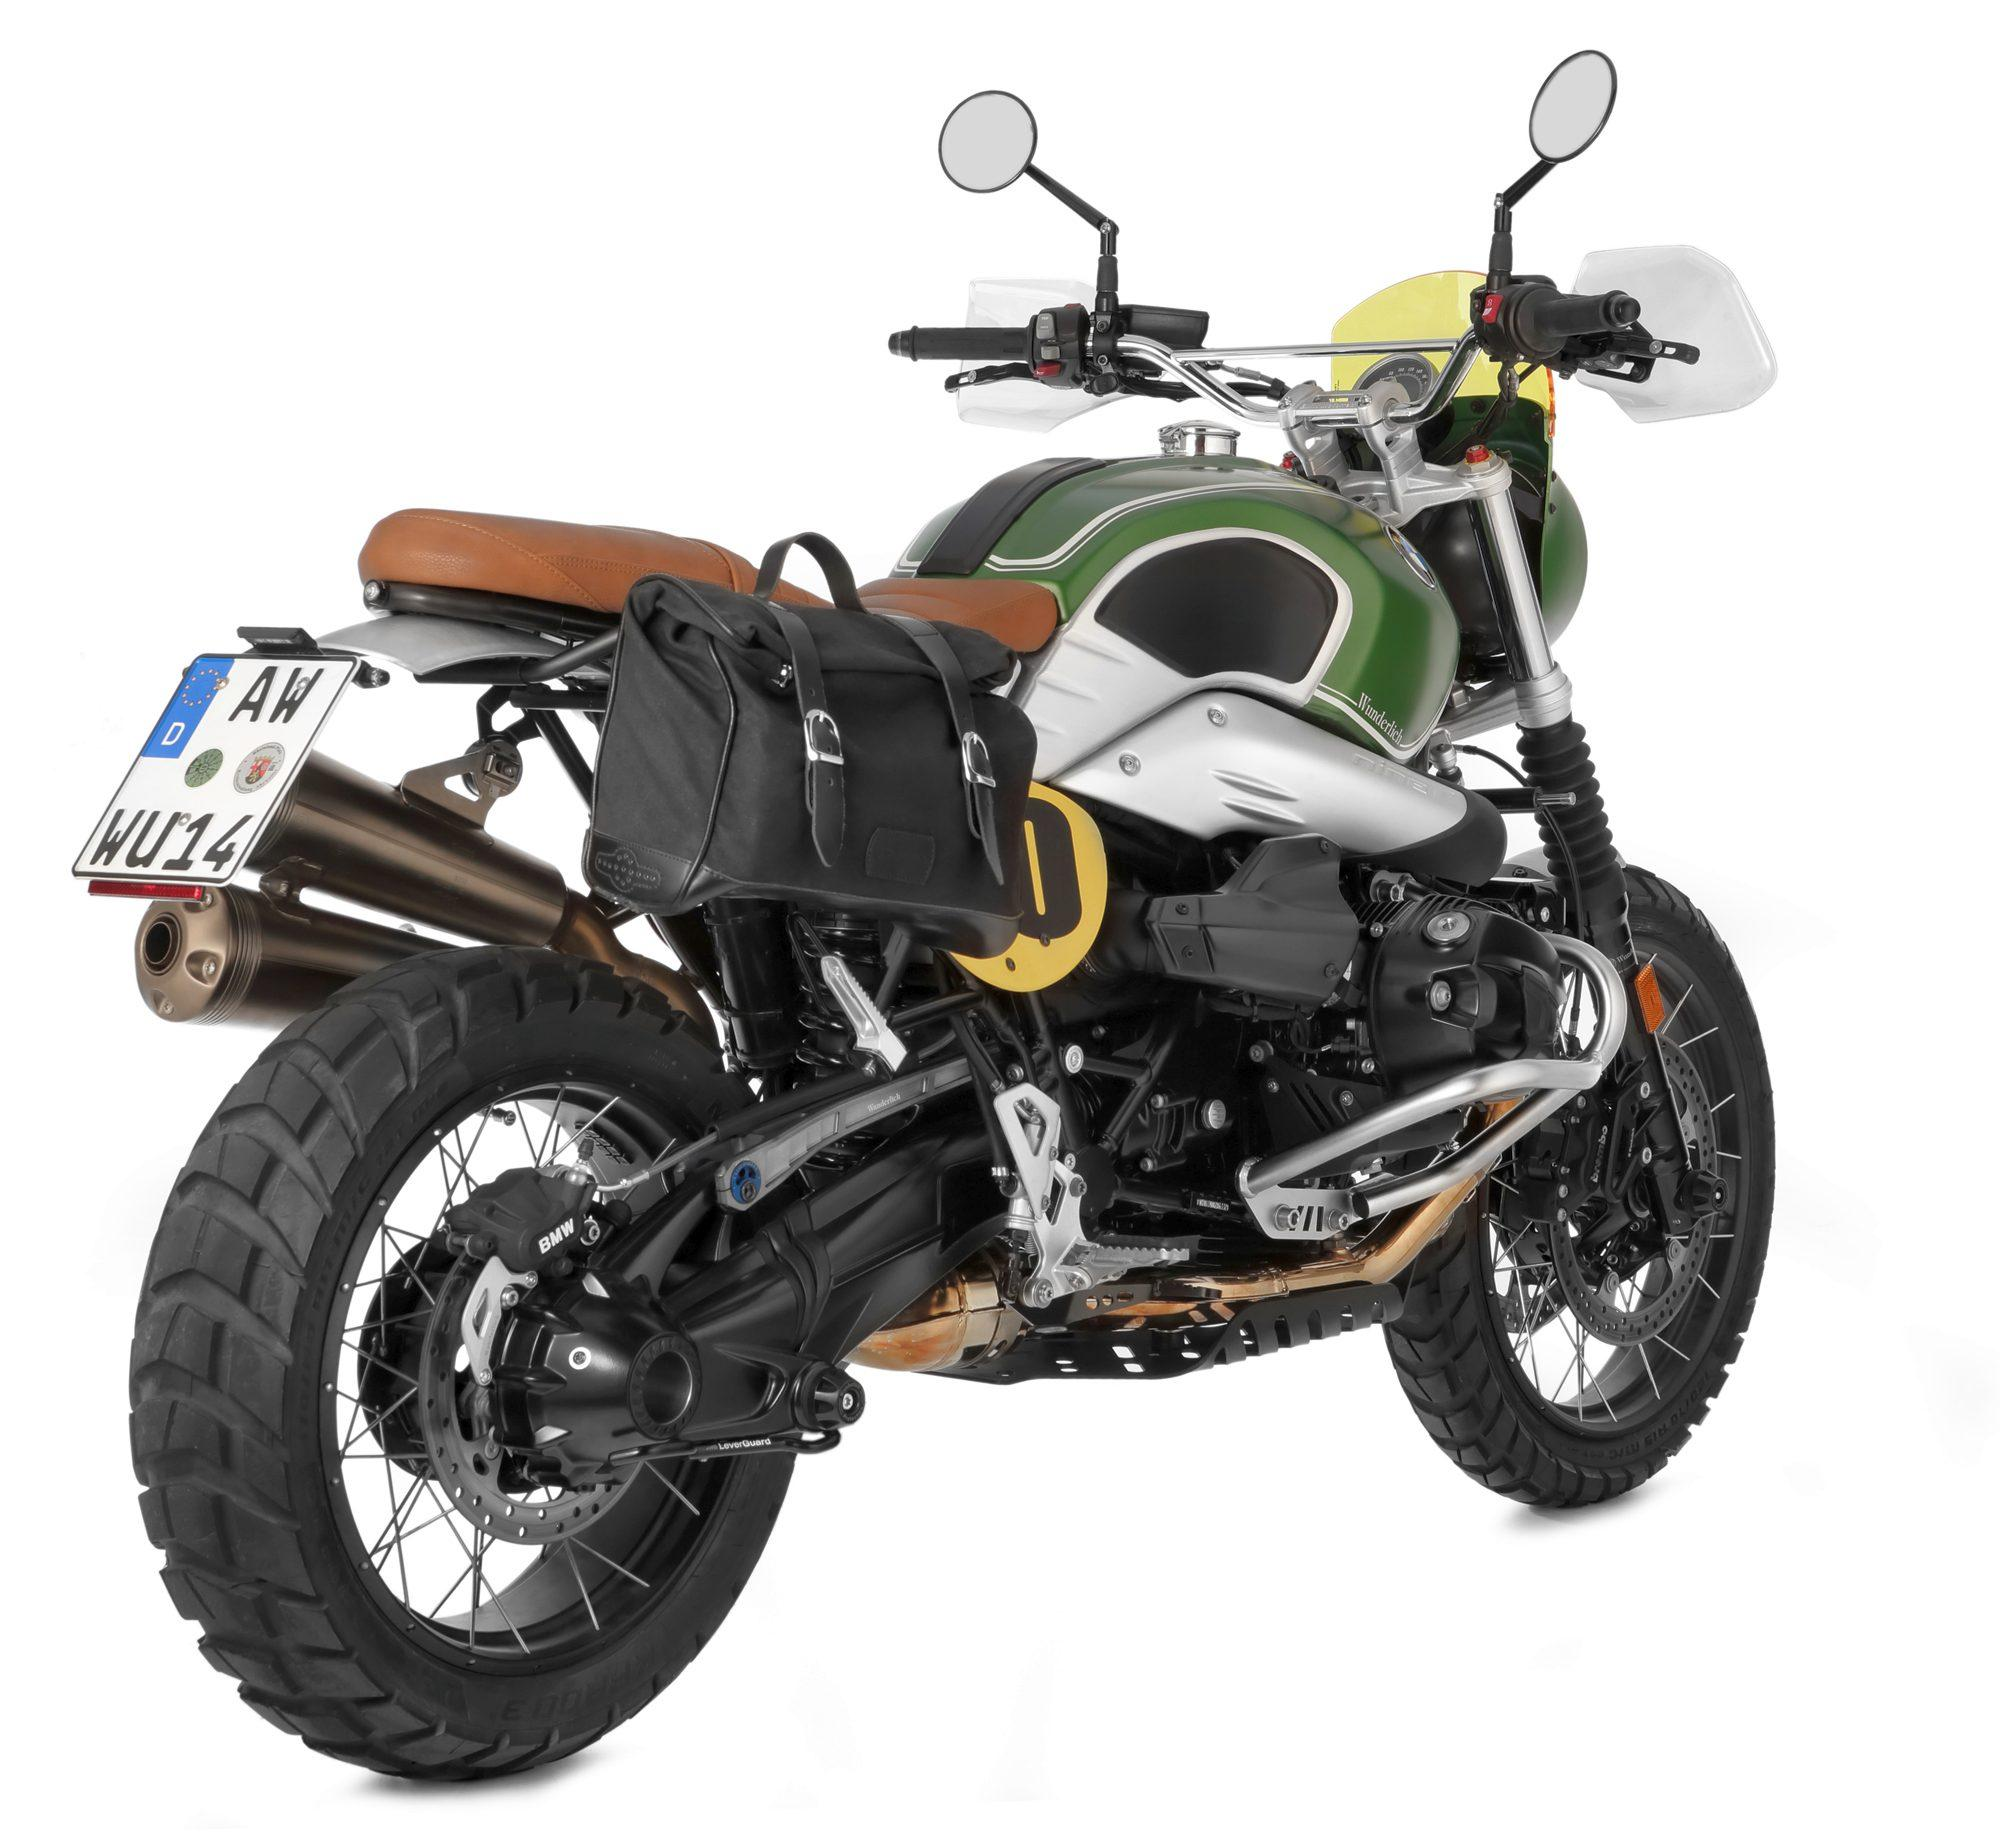 wunderlich bmw r ninet green hell motorrad fotos. Black Bedroom Furniture Sets. Home Design Ideas